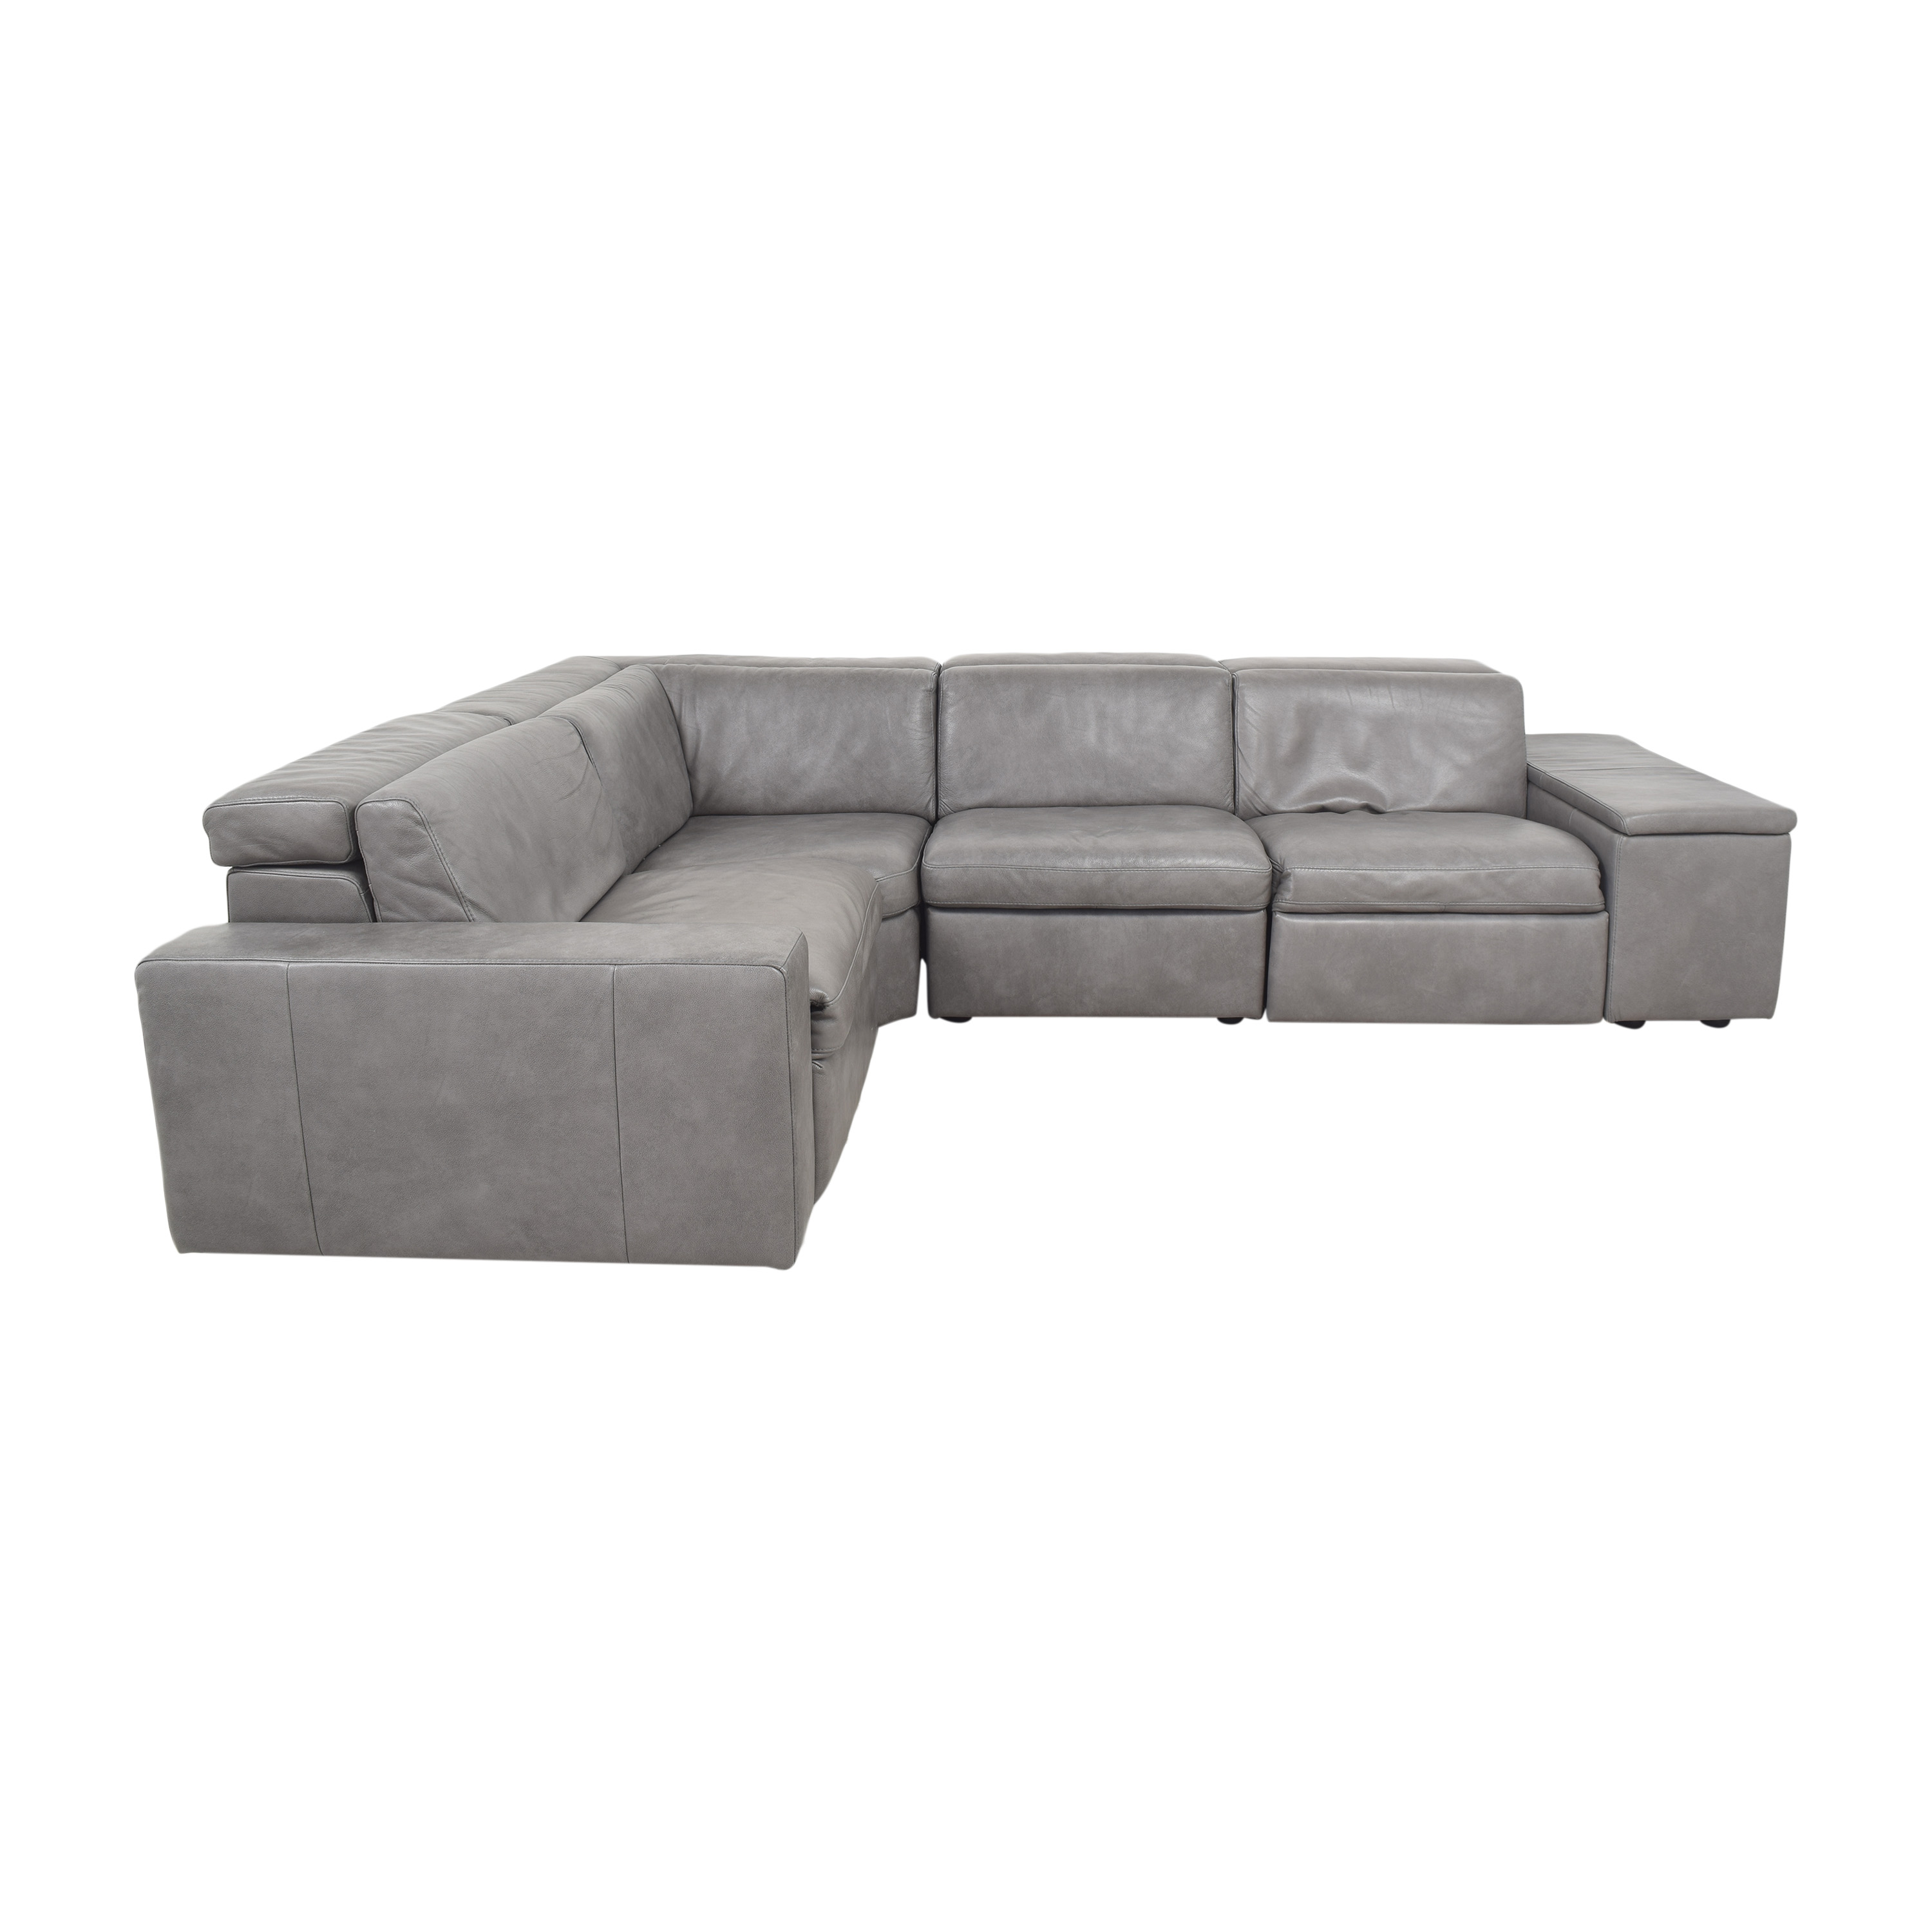 West Elm West Elm Enzo Four Piece Reclining Sectional Sofa ct